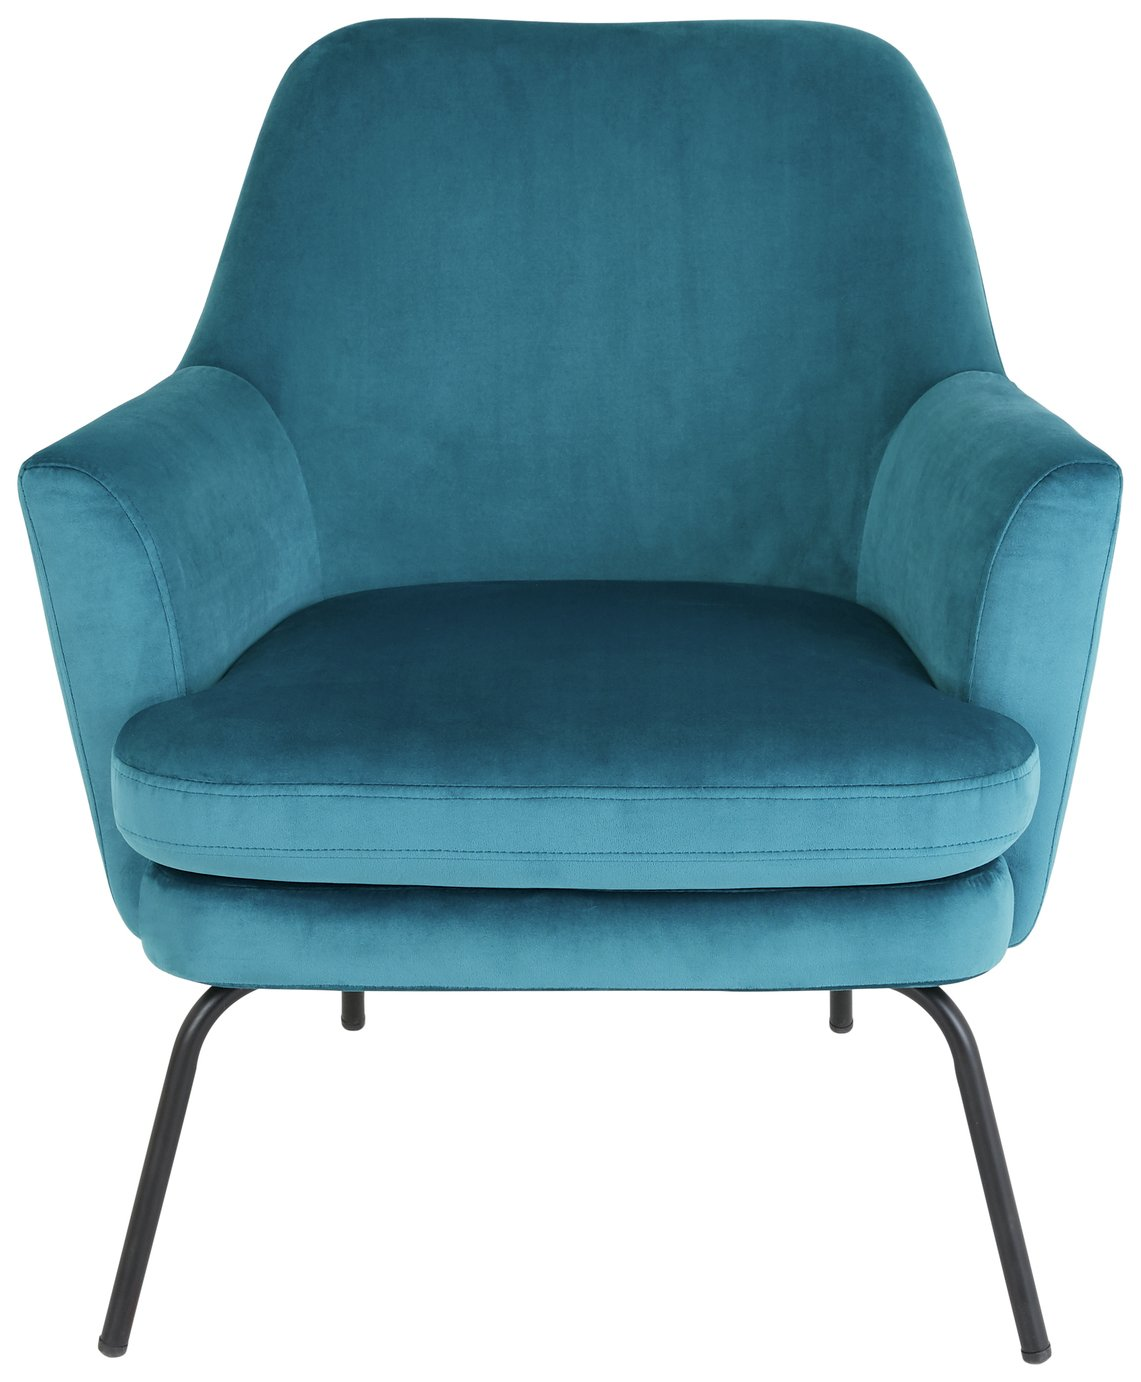 Habitat Celine Velvet Accent Chair - Teal